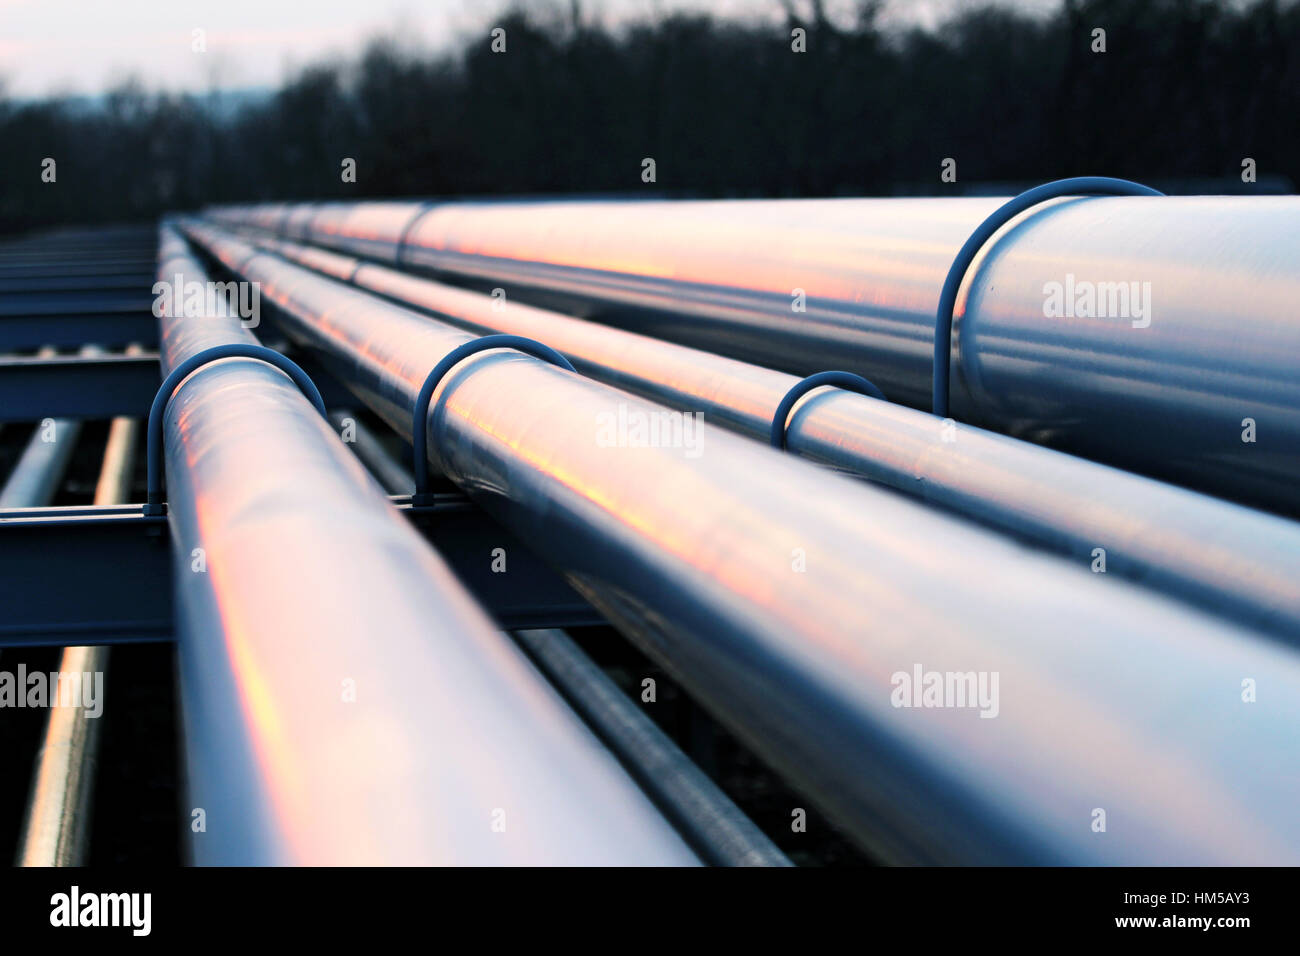 pipeline system in crude oil factory - Stock Image